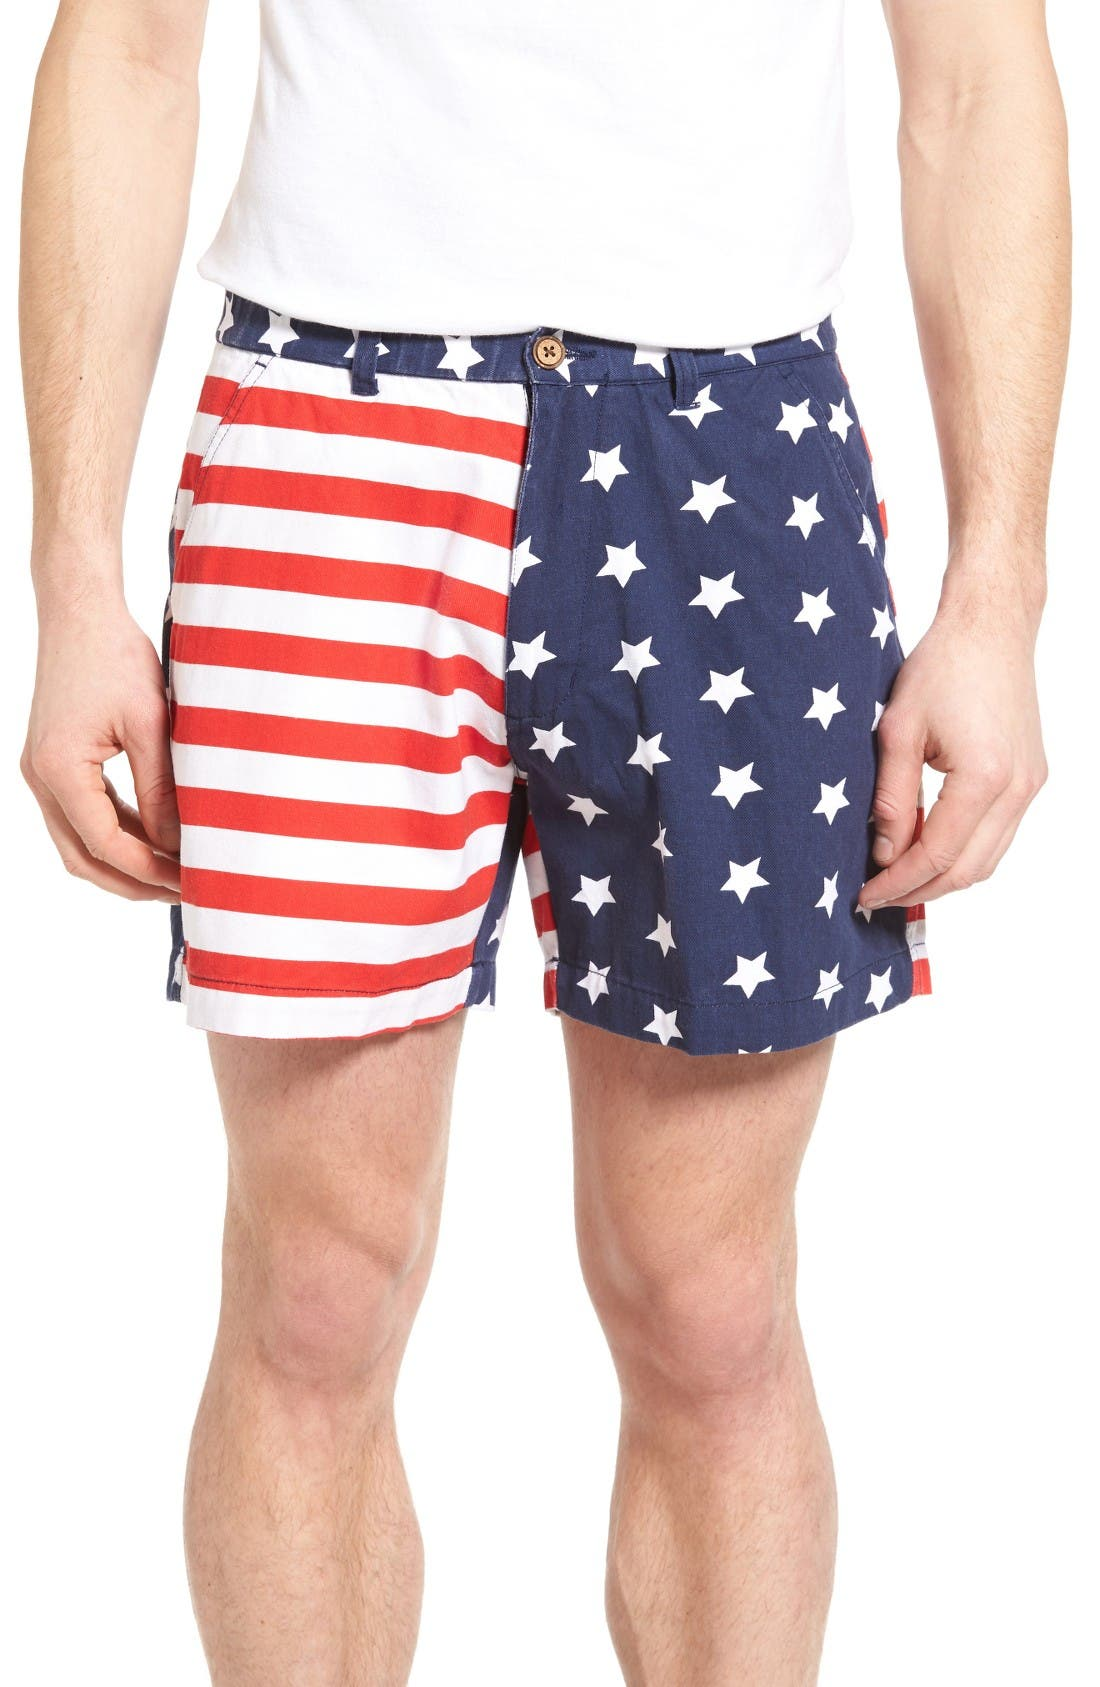 Vintage 1946 Snappers Americana Shorts